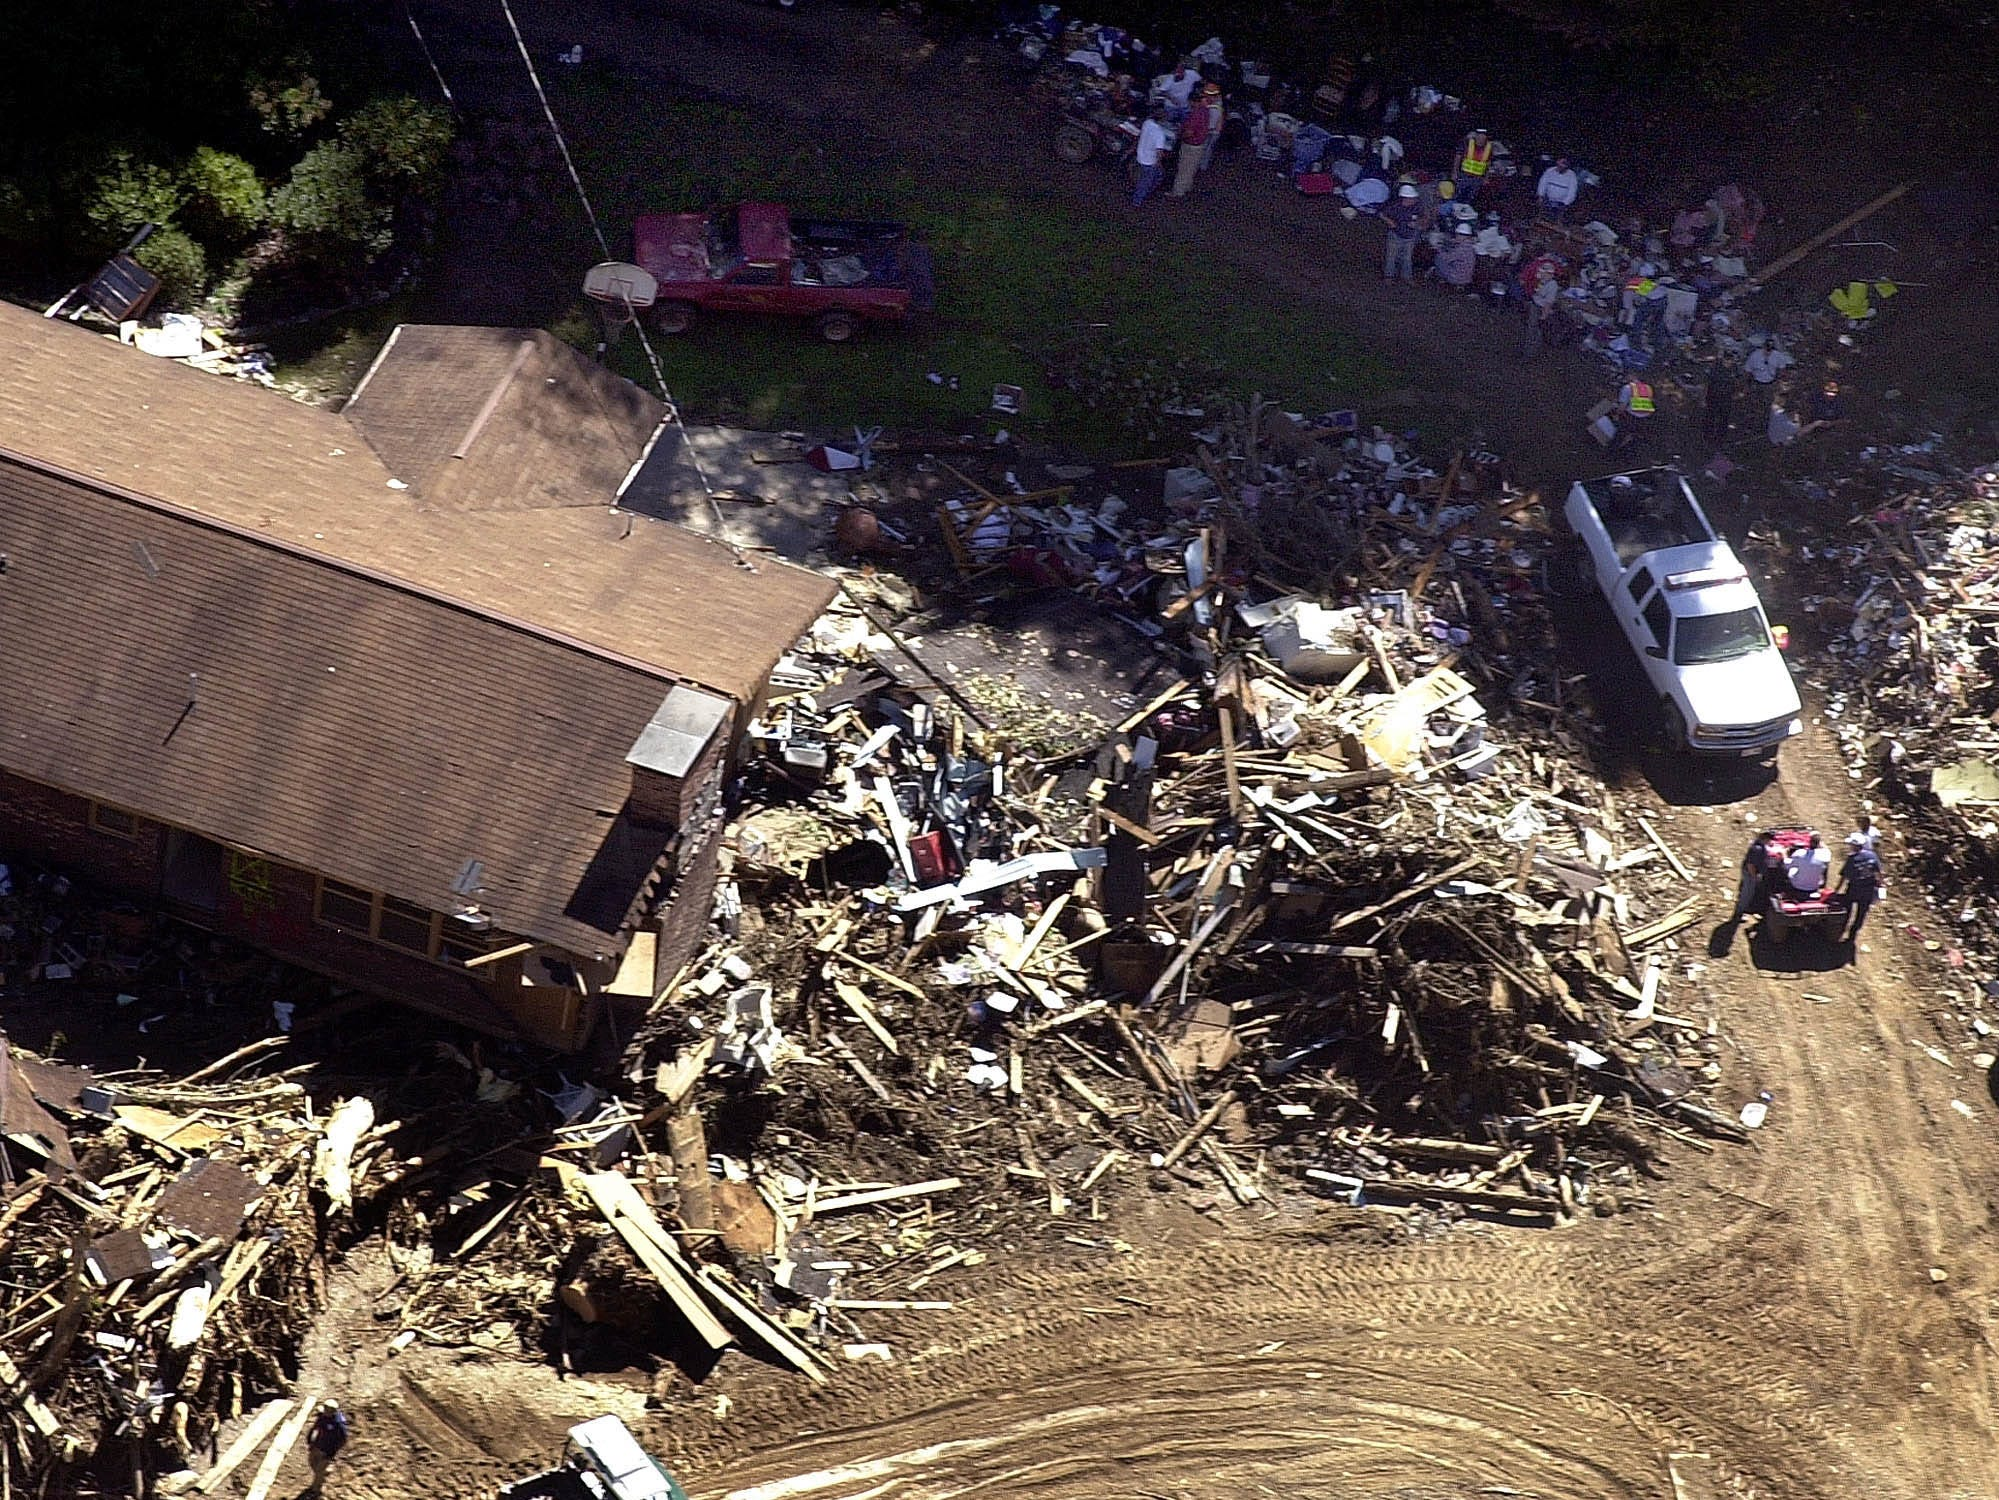 Debris surrounds a destroyed house in the Peeks Creek community, near Franklin on Sept. 20, 2004. Heavy rains from the remnants of Hurricane Ivan along with a massive rockslide claimed at least three lives last Friday. Cadaver dogs joined workers with heavy equipment Monday in the search for four people still missing after the remnants of Hurricane Ivan sent a torrent of mud, water and debris through the mountain town.